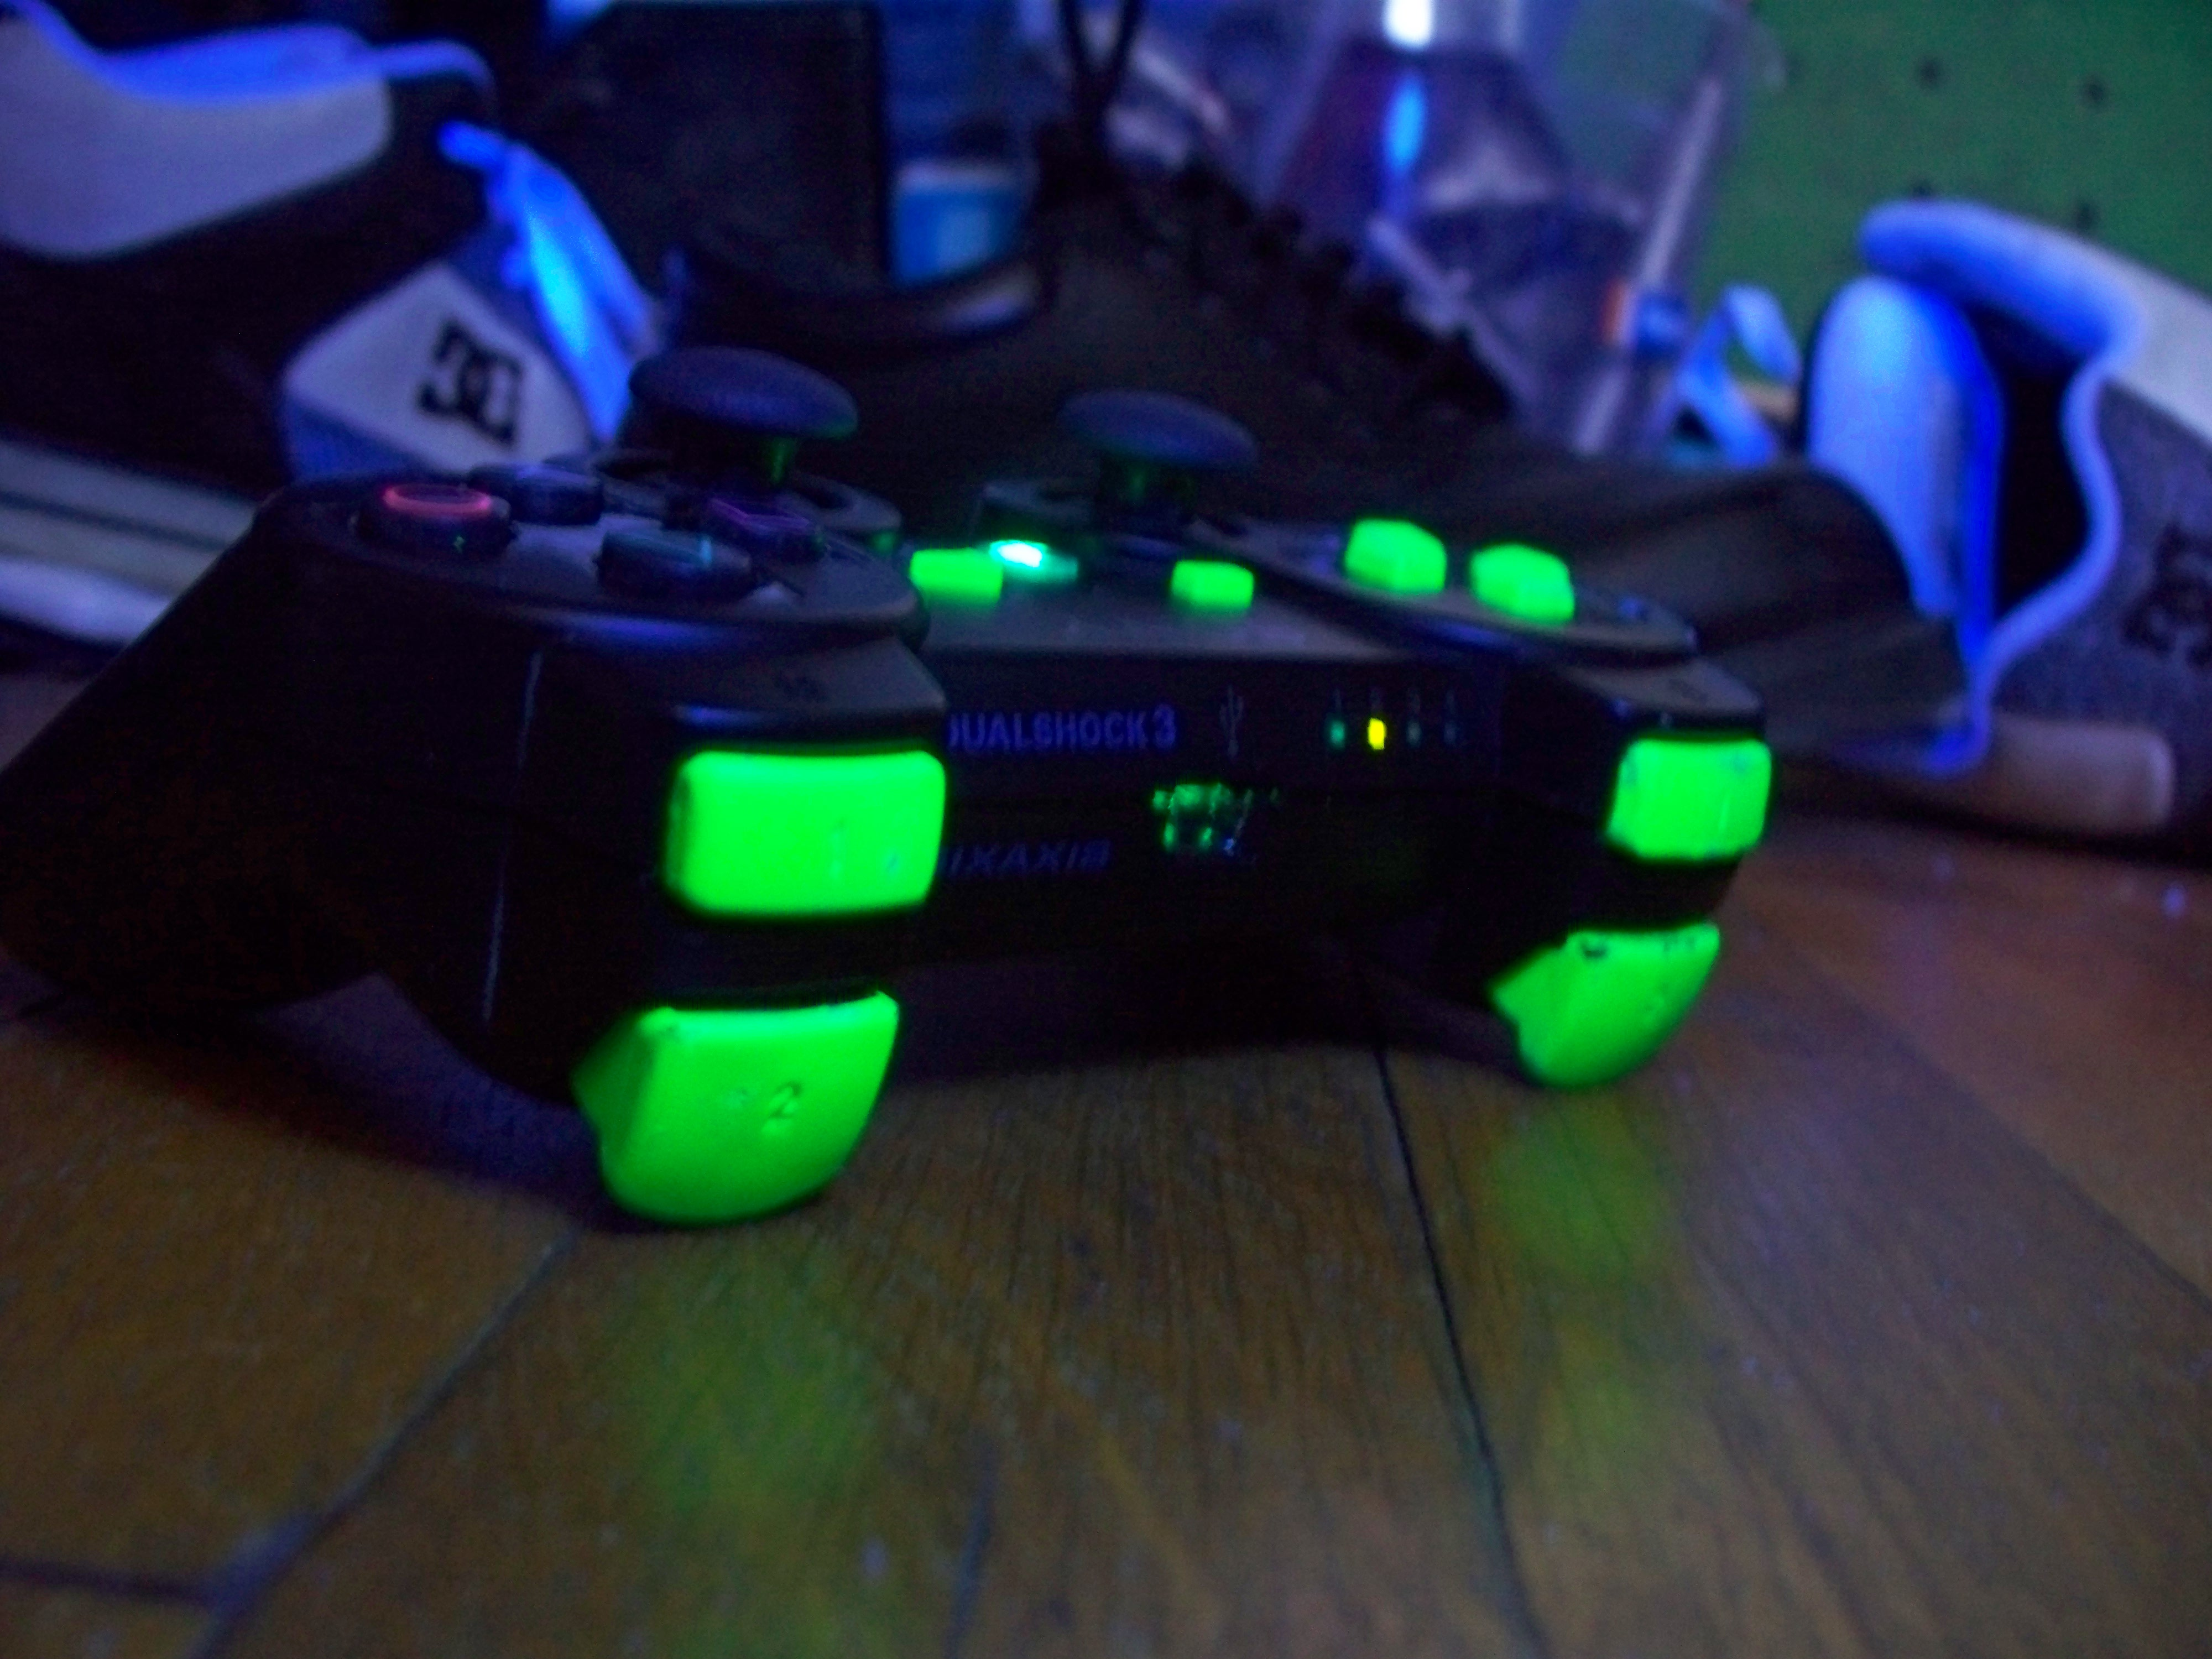 How to Spray paint the ps3 dual shock L1 L2 and R1 R2 buttons